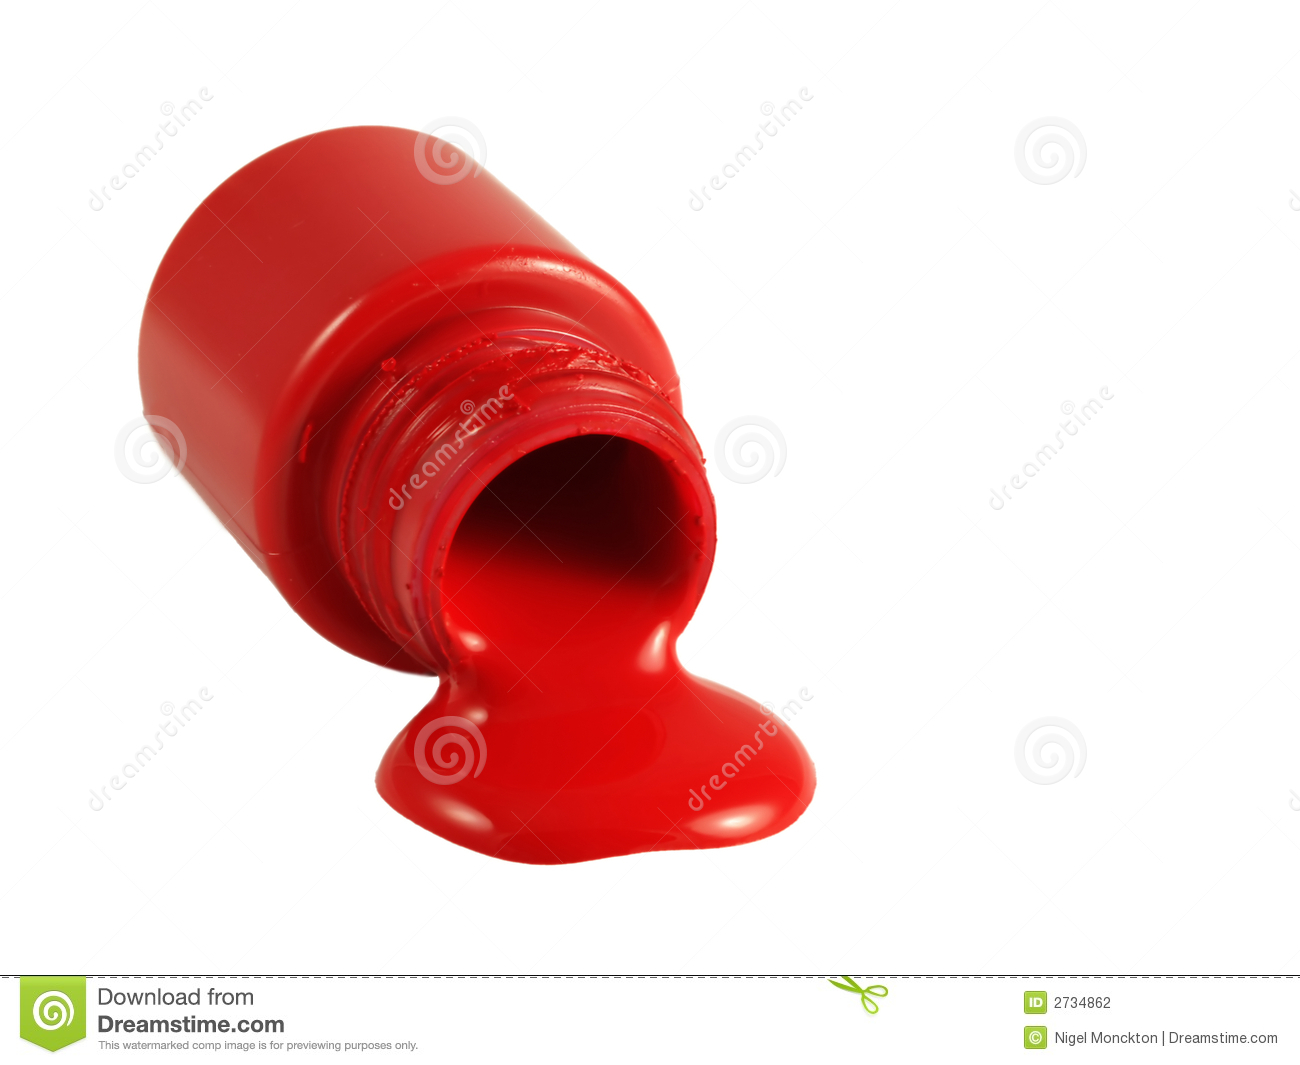 Red Paint spilled red paint royalty free stock images - image: 10288239